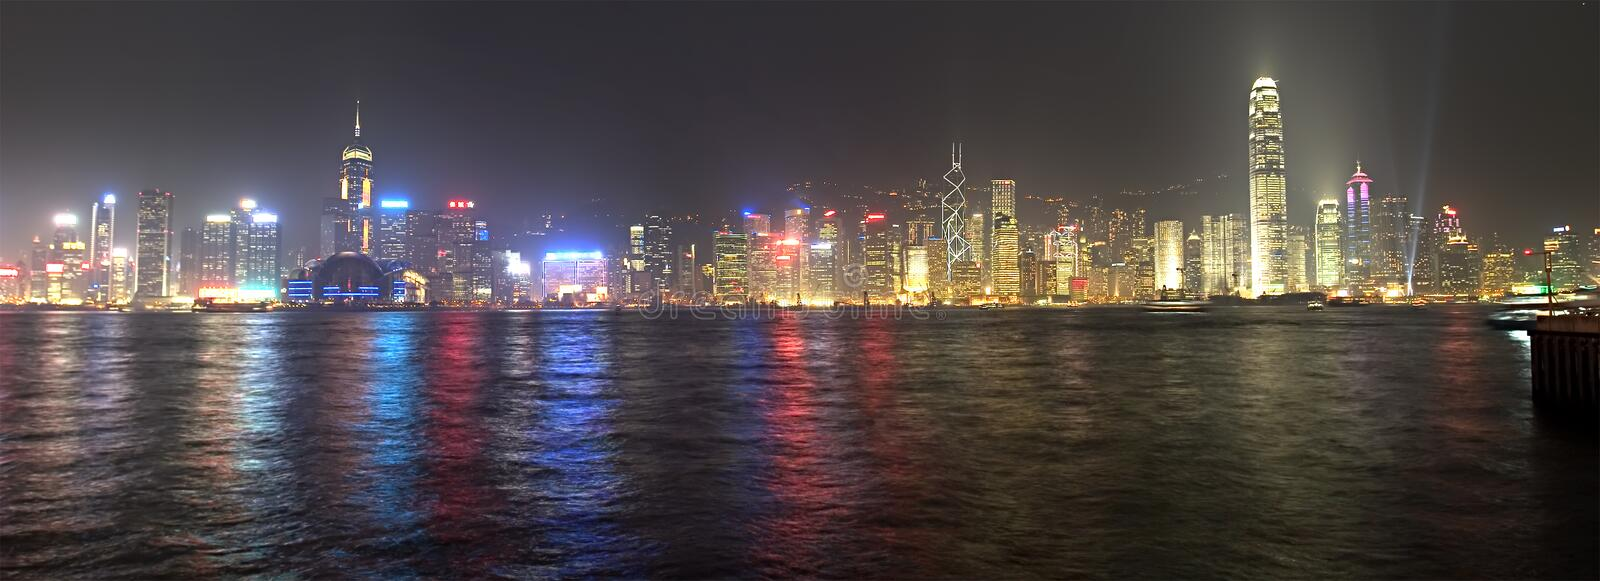 Panorama de nuit de Hong Kong photo libre de droits